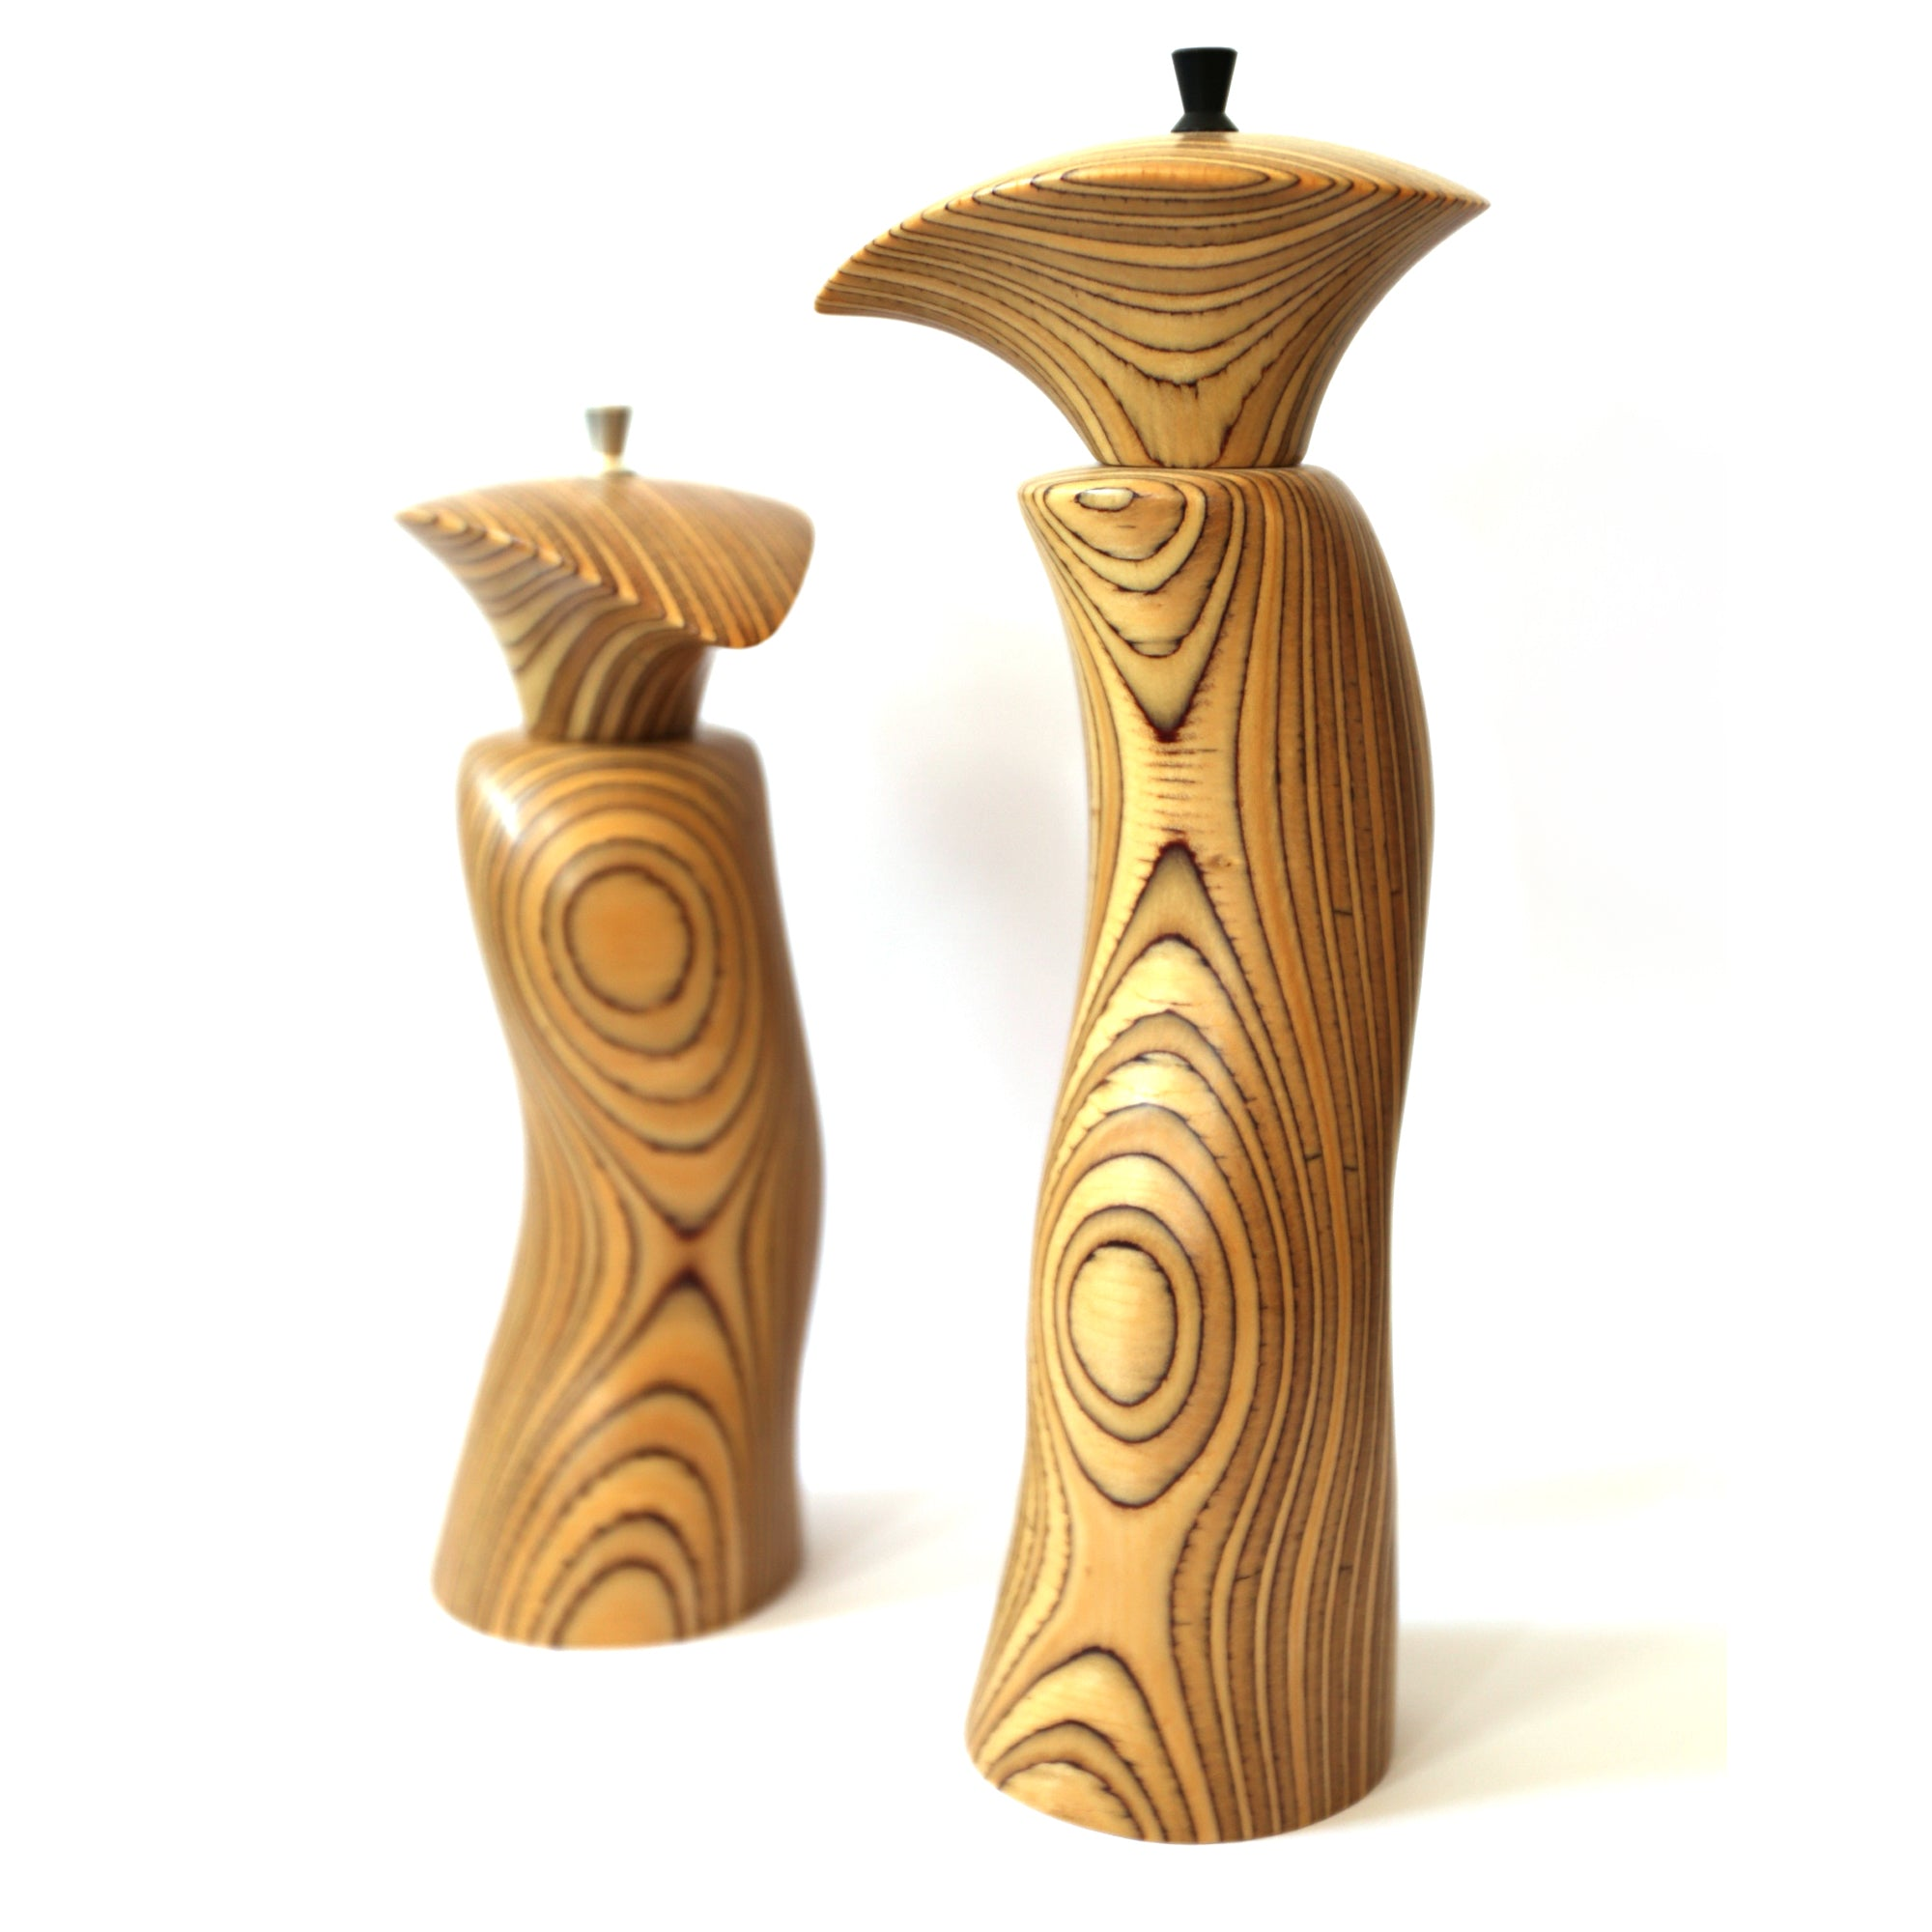 Chris Reid - Salt and Pepper Grinders in Marine Ply (cre009)